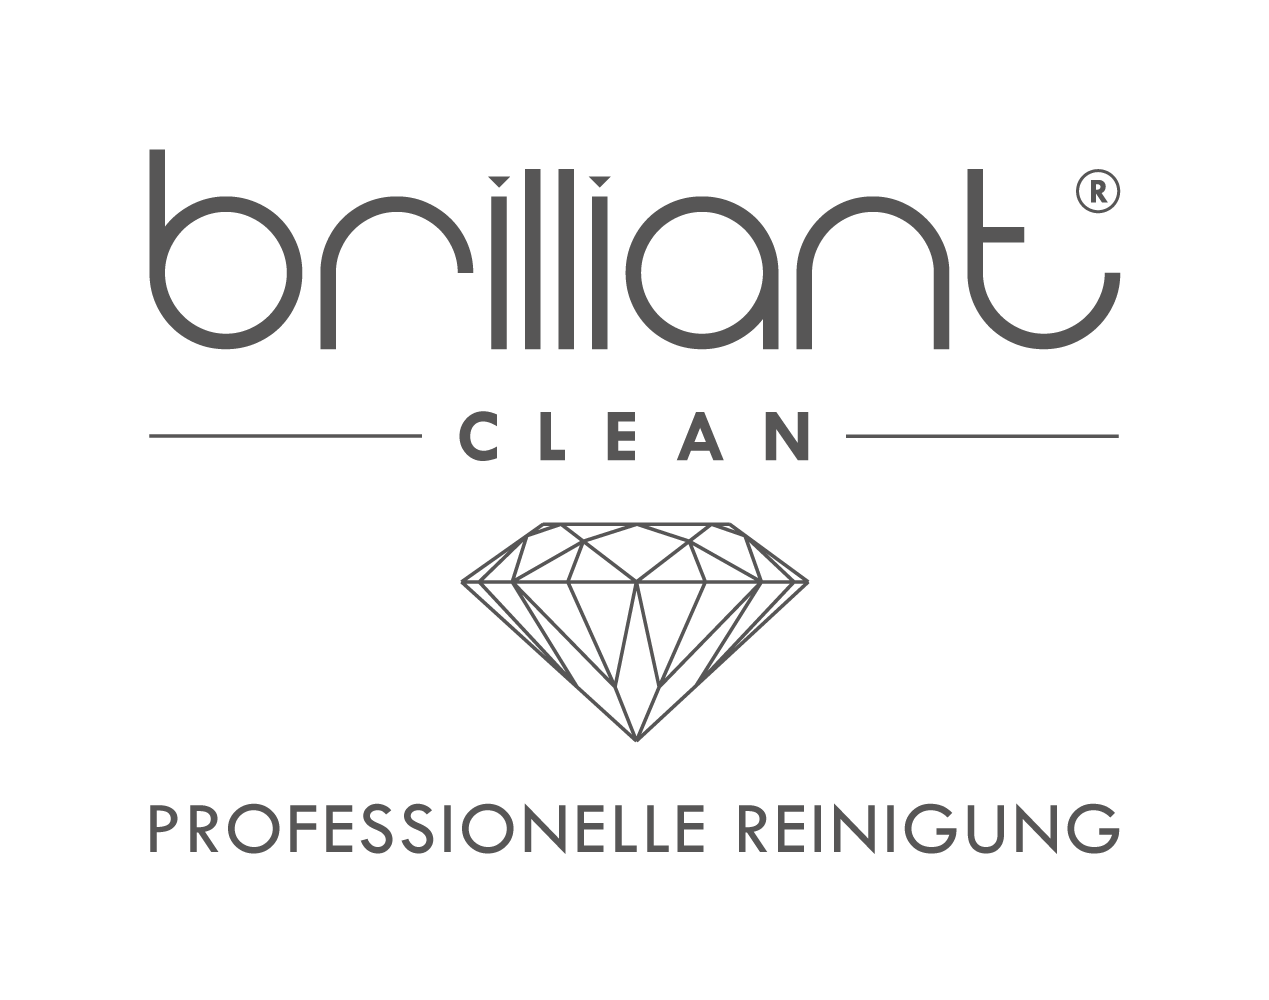 brilliant-clean-reinigung-Tirol